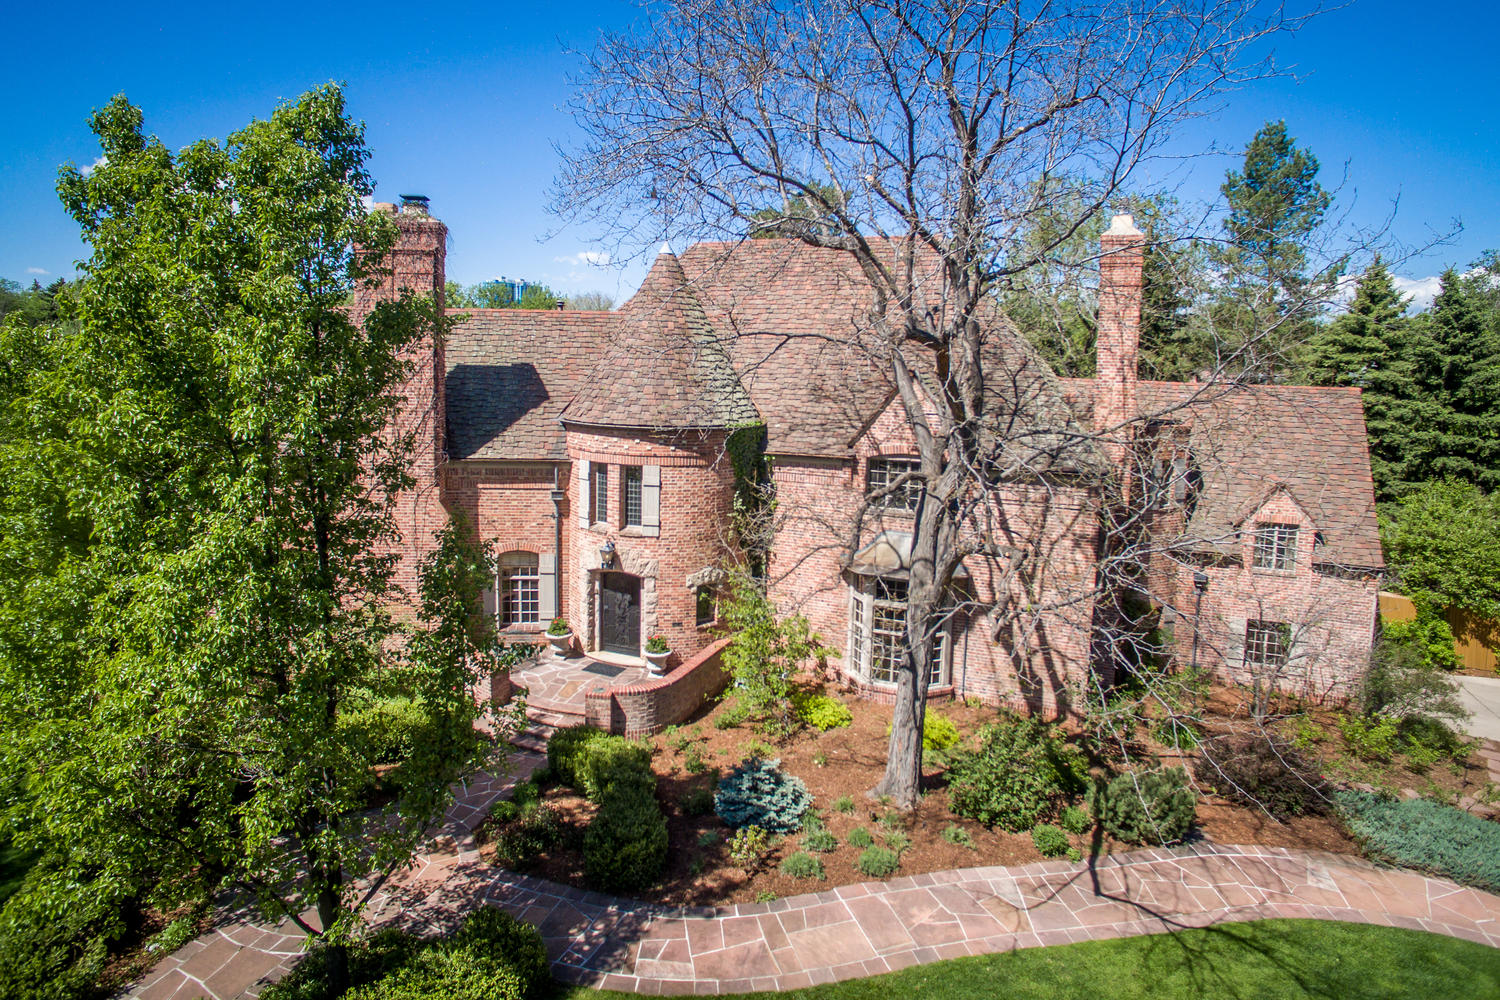 Single Family Home for Active at Very Special Tudor Located in Heart of Country Club Historic Neighborhood 401 Race Street Denver, Colorado 80206 United States